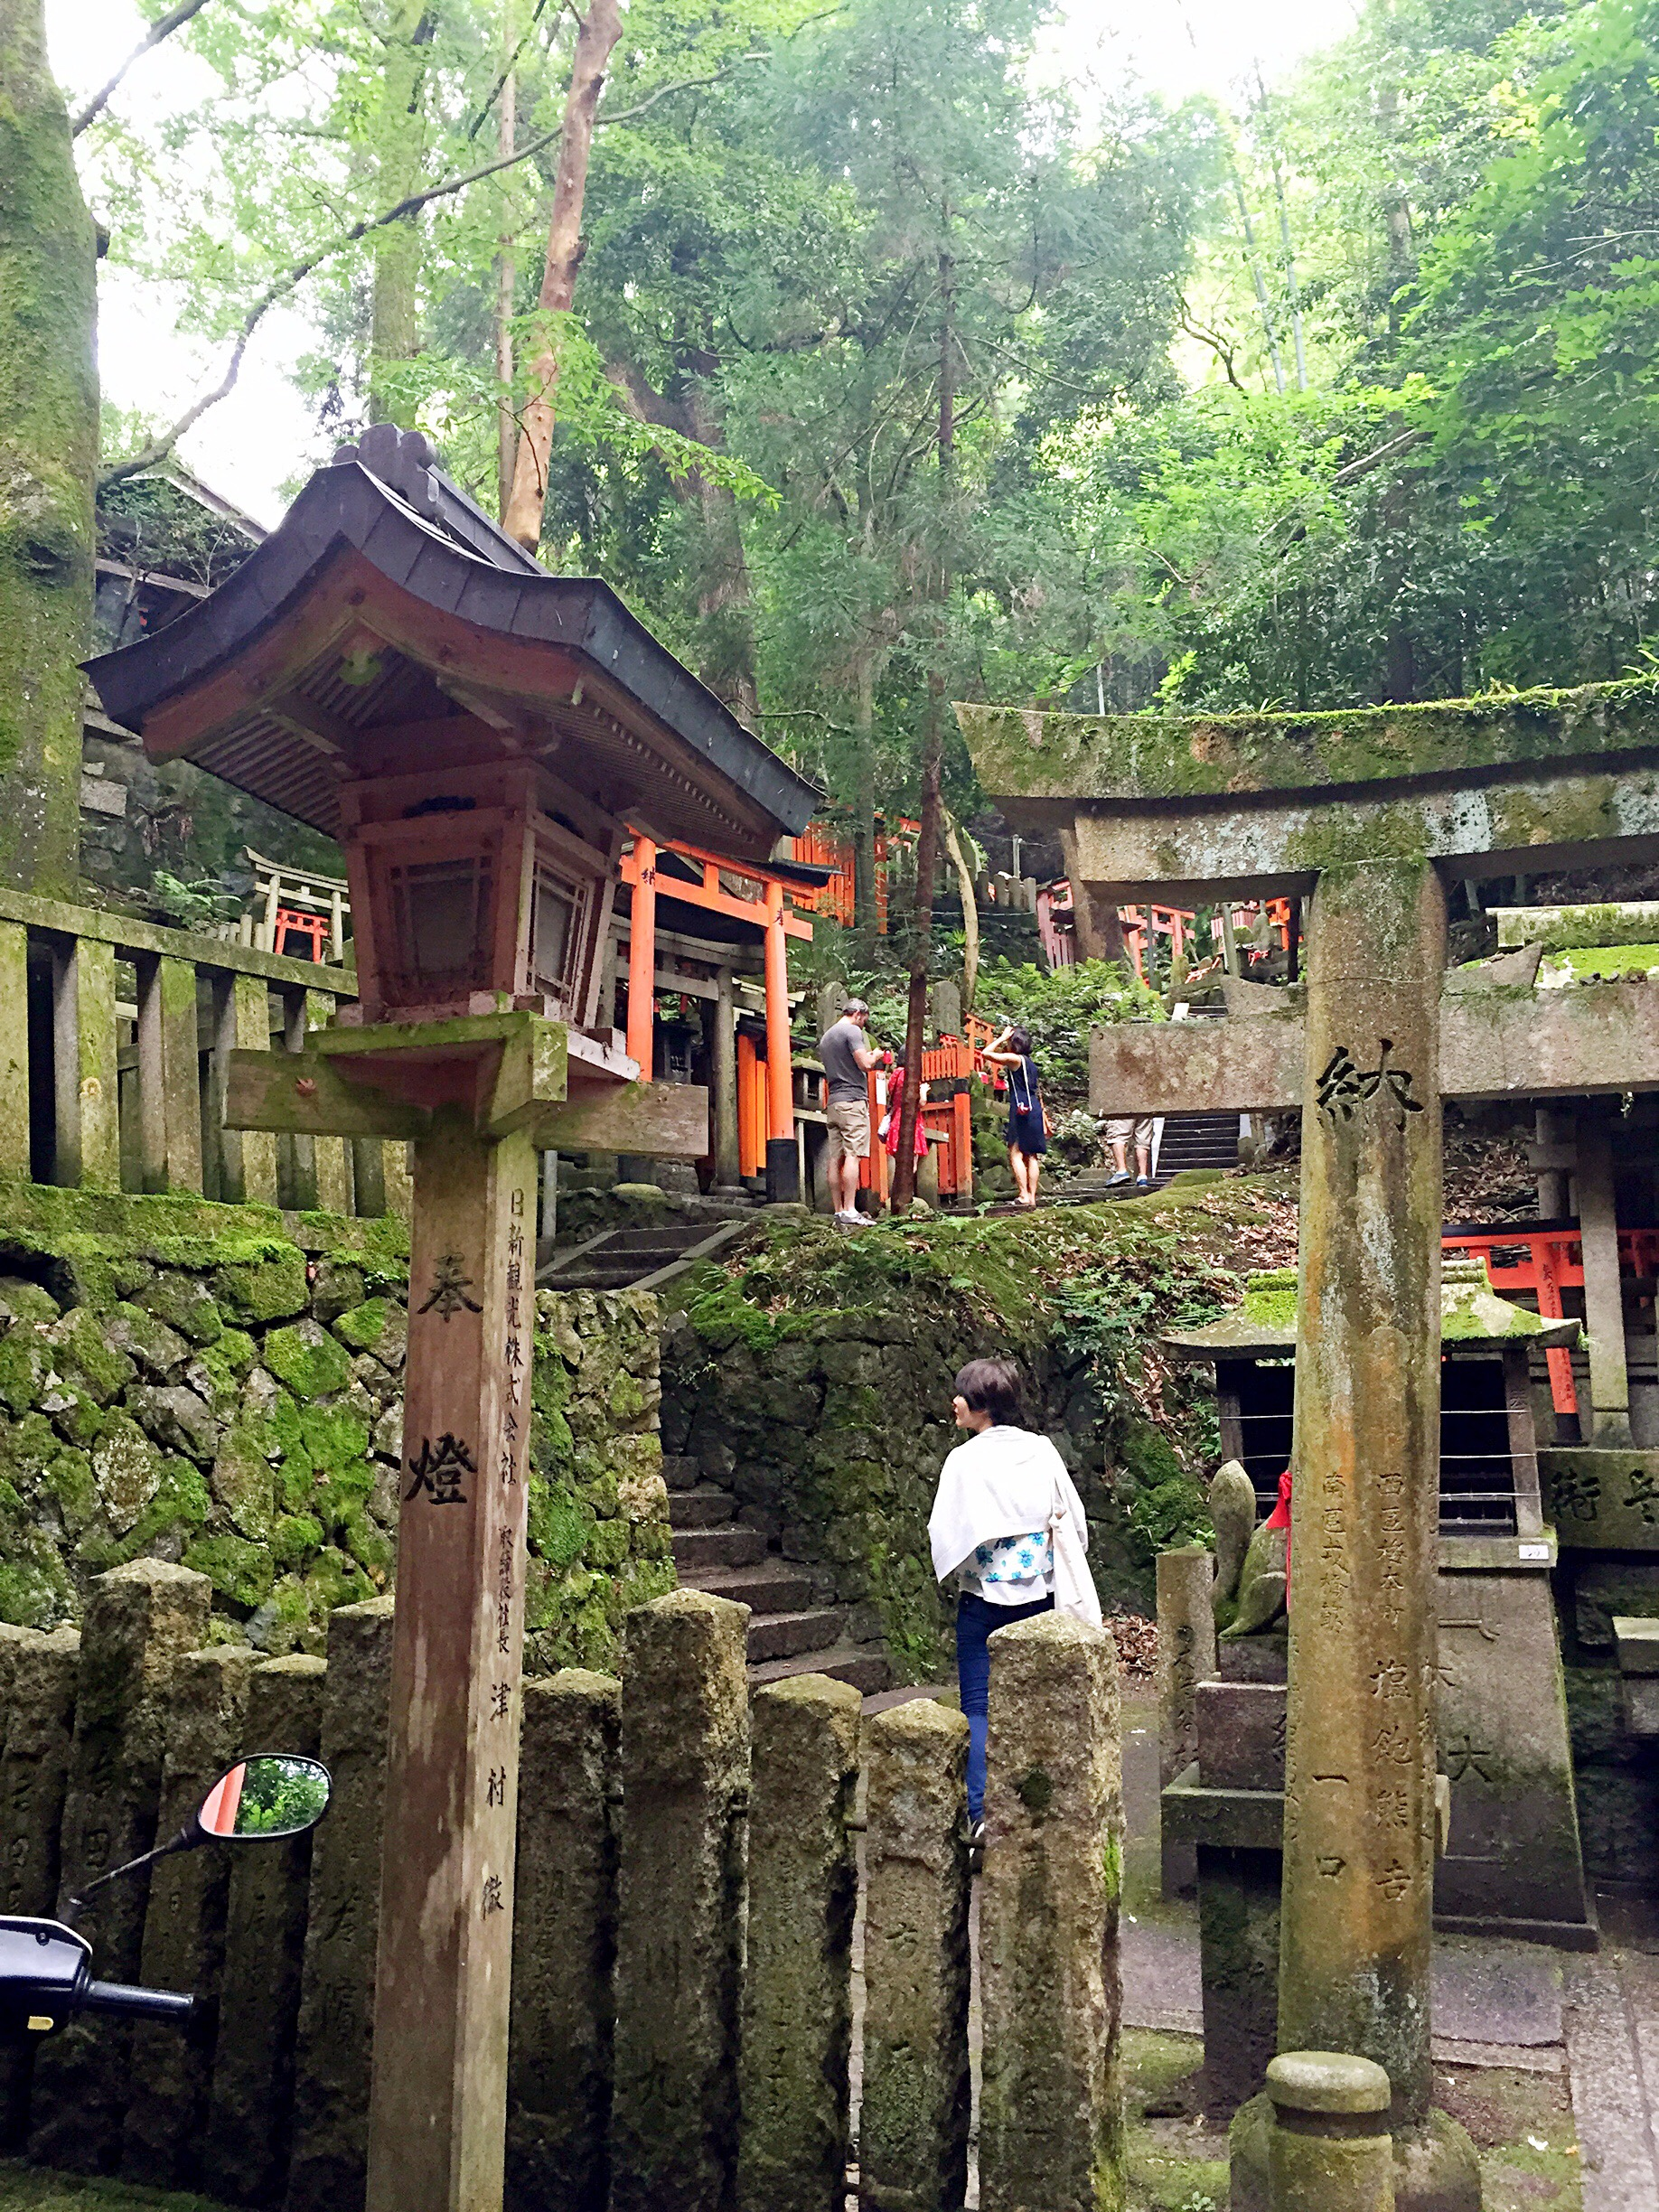 Small shrines high up in the mountain